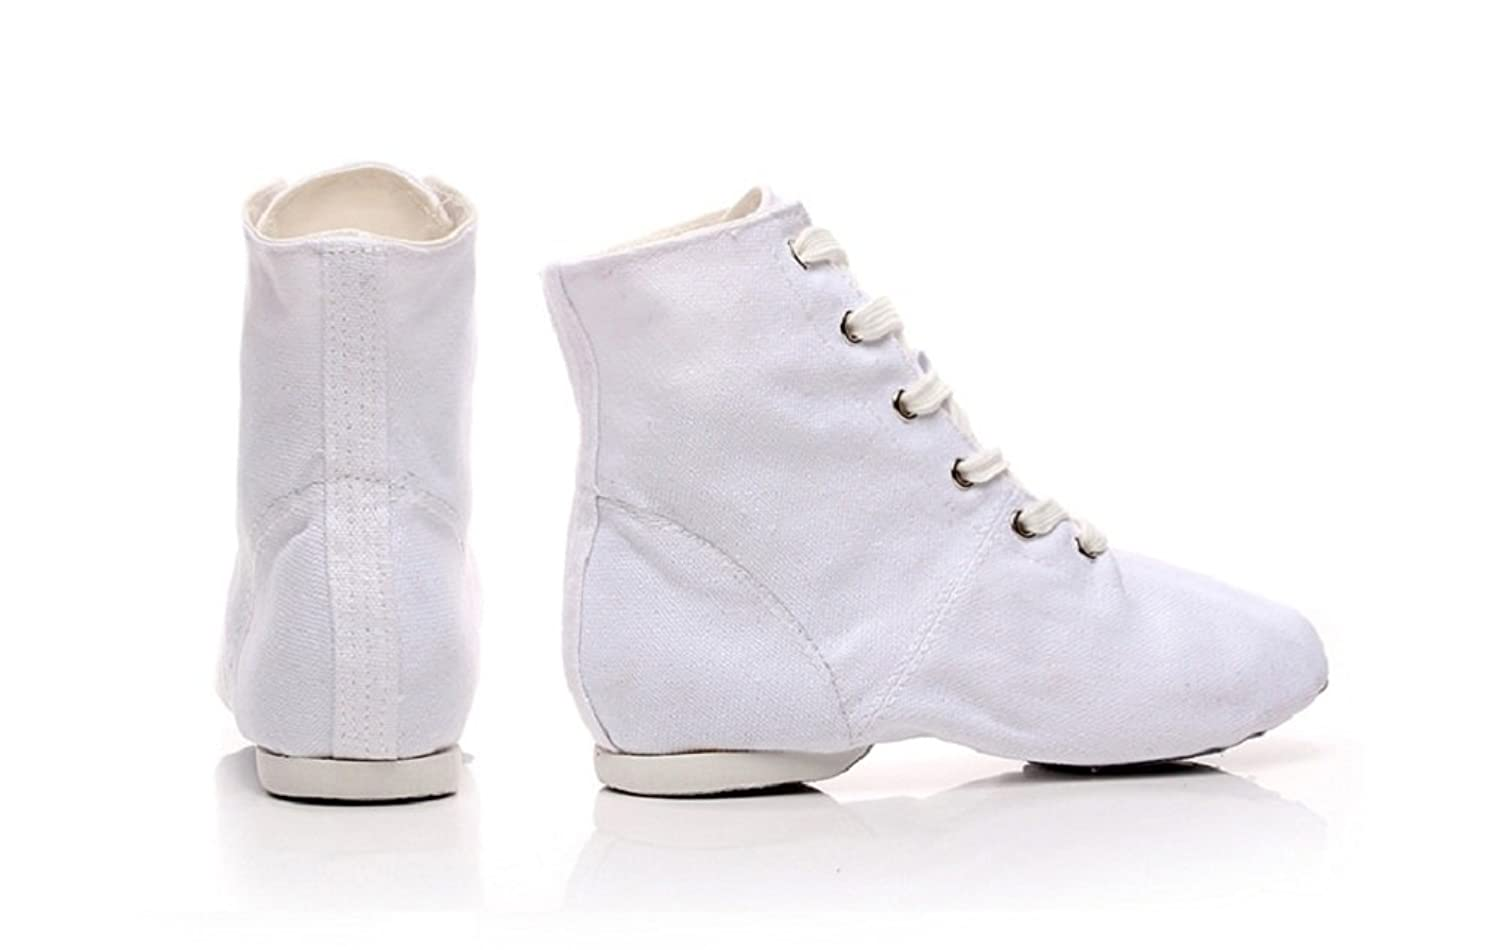 Vintage Boots, Granny Boots, Retro Boots NLeahershoe Lace-up Canvas Dance Shoes Flat Jazz Boots for Practice Suitable for Both Men and Women $14.99 AT vintagedancer.com